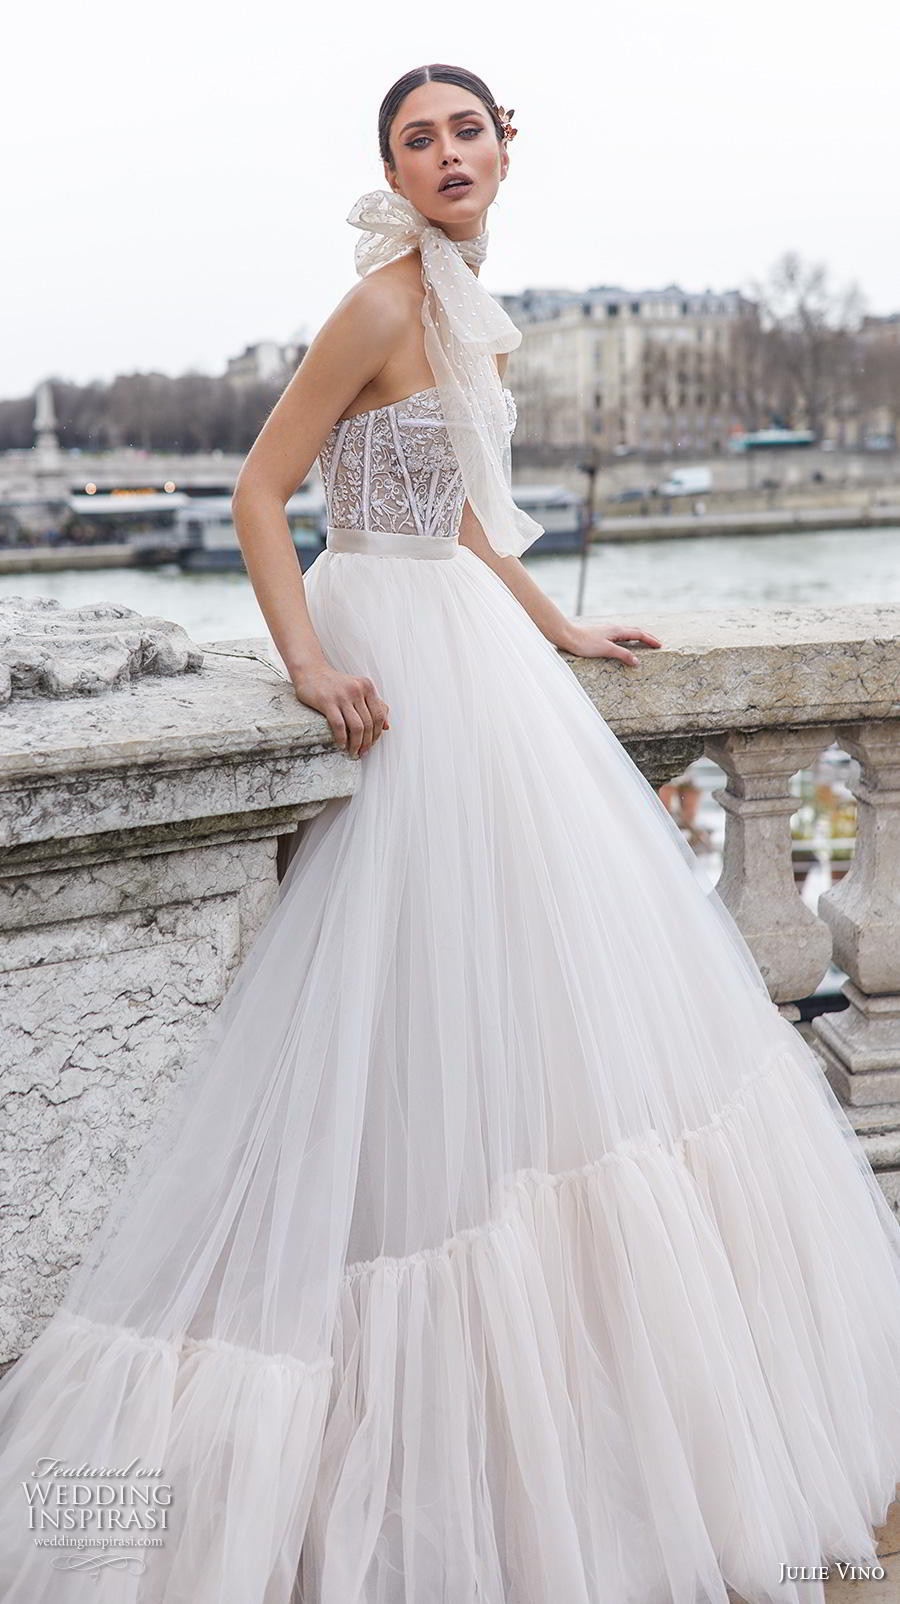 julie vino 2019 paris bridal strapless sweetheart neckline heavily embellished bodice bustier romantic a  line wedding dress chapel train (7) sdv